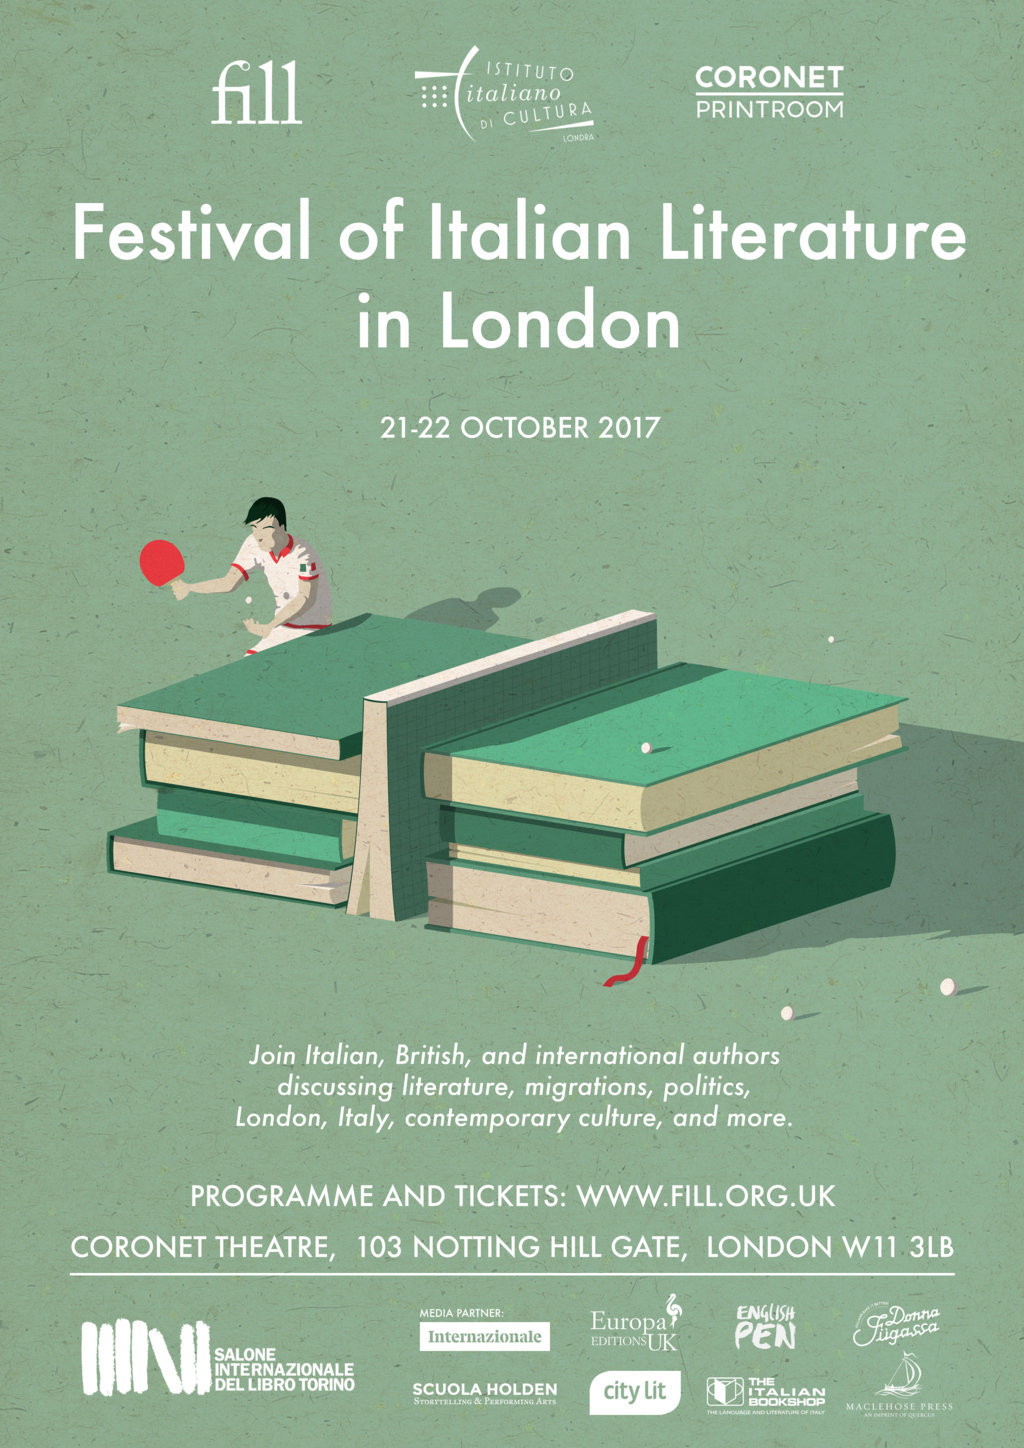 Festival of Italian Literature in London 21/22 October @ Coronet, Notting Hill